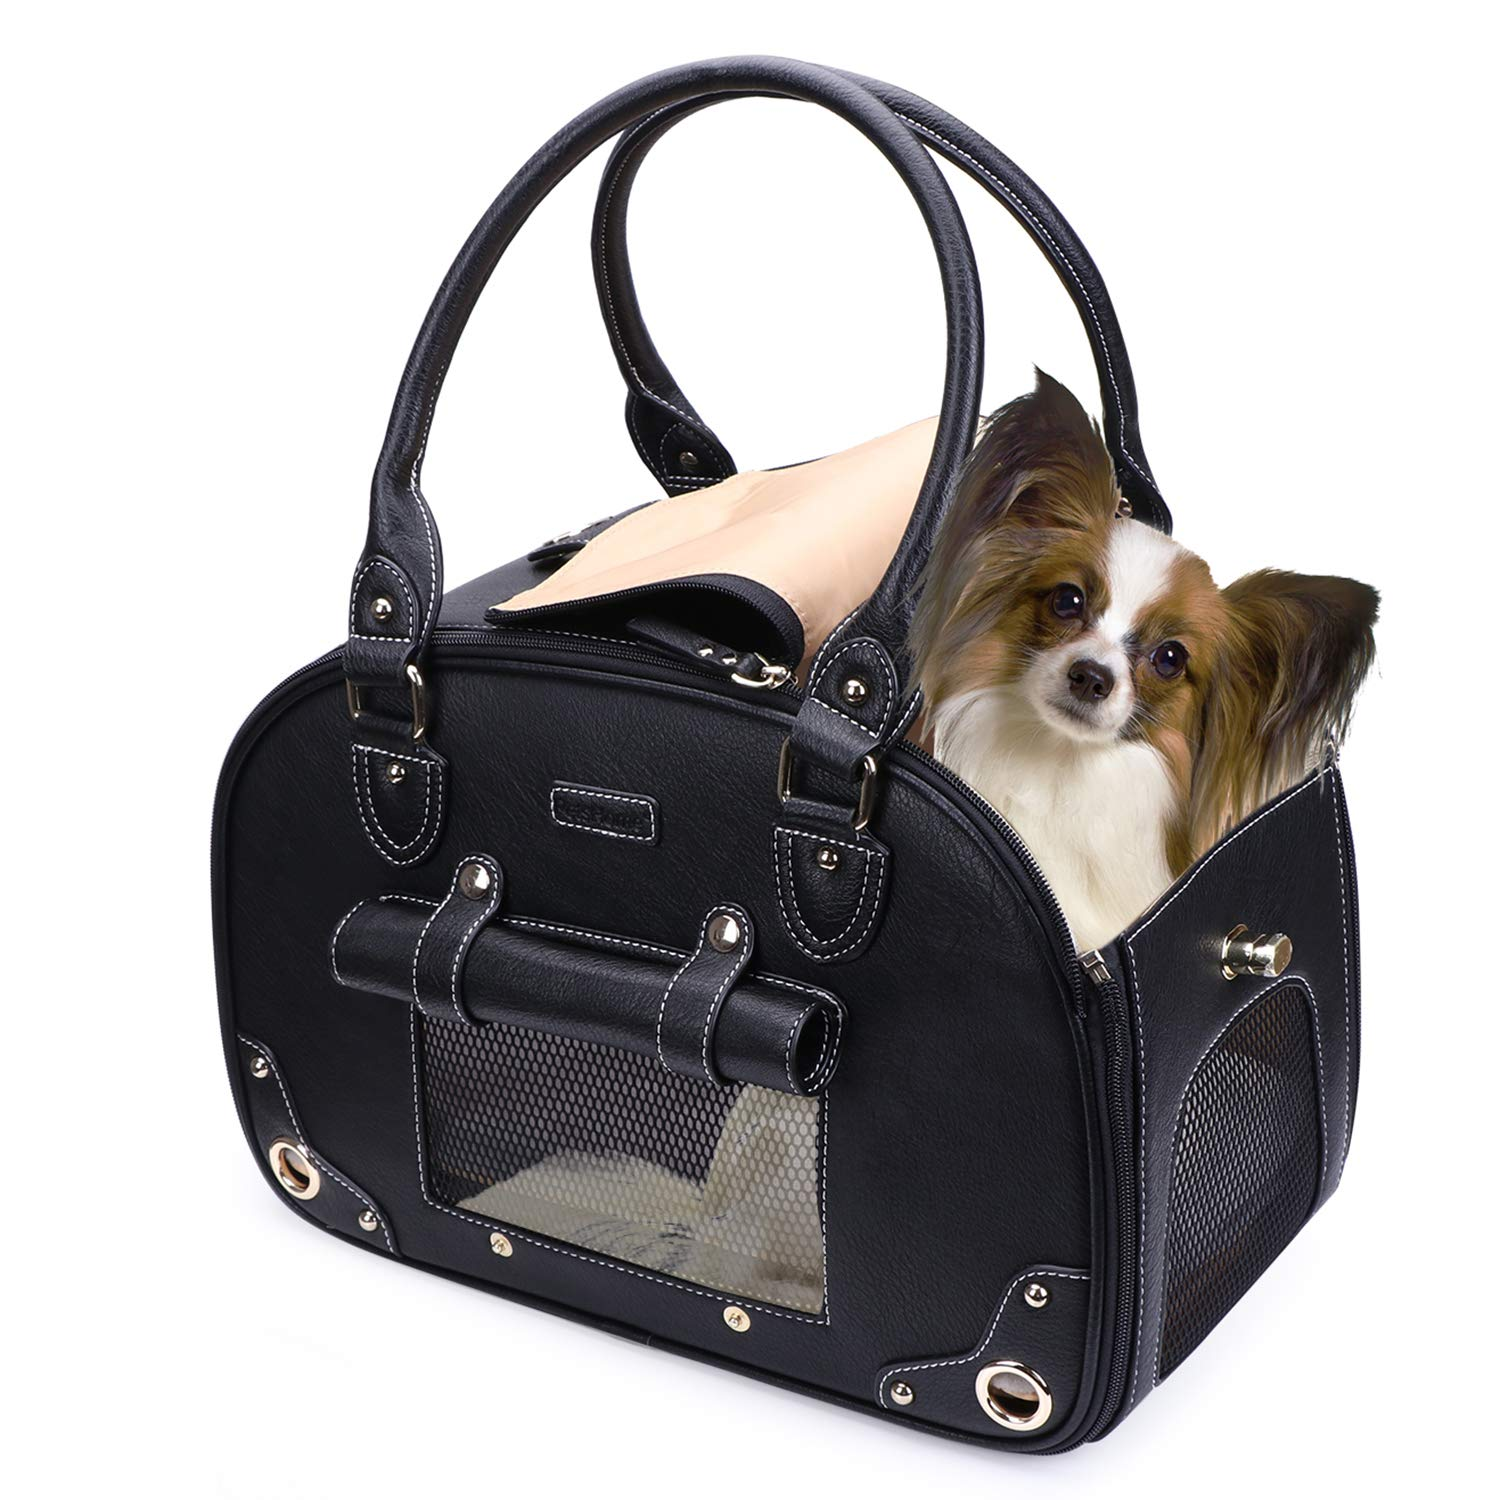 PetsHome Dog Carrier Purse, Pet Carrier, Cat Carrier, Foldable Waterproof Premium Leather Pet Travel Portable Bag Carrier for Cat and Small Dog Home & Outdoor Small Black by PetsHome